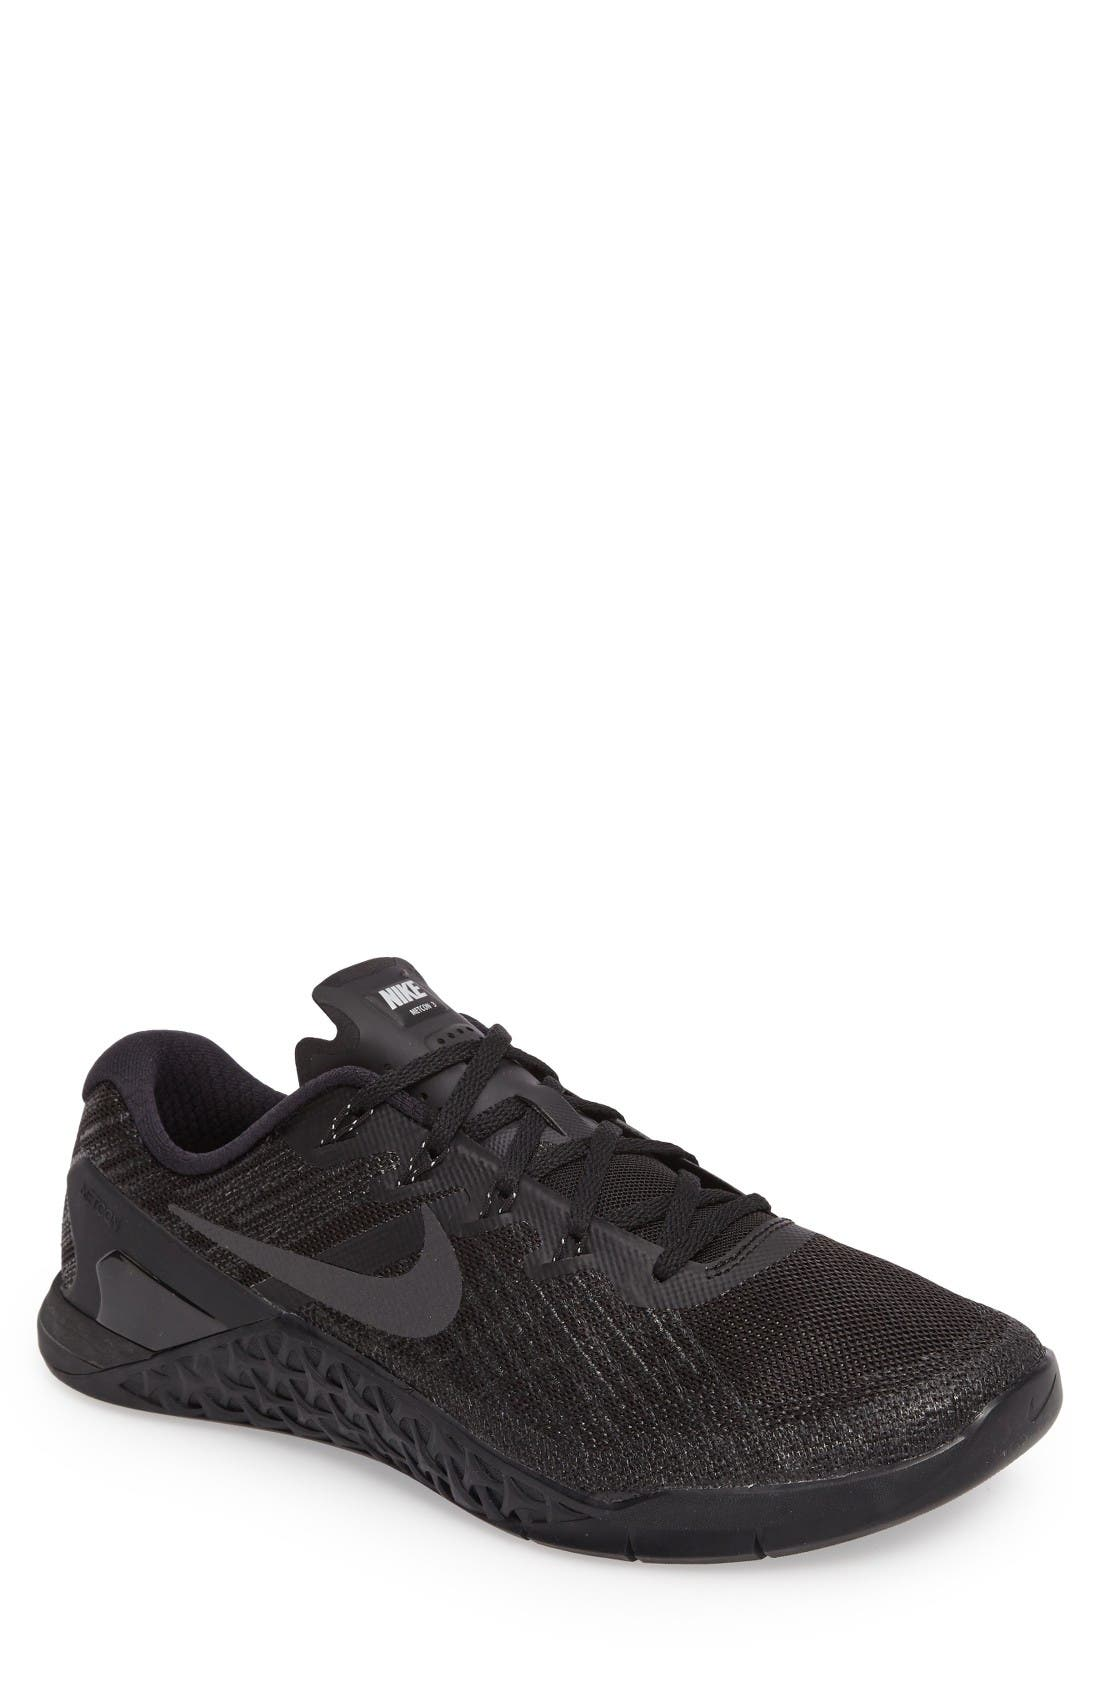 Nike Metcon 3 Training Shoe (Men)